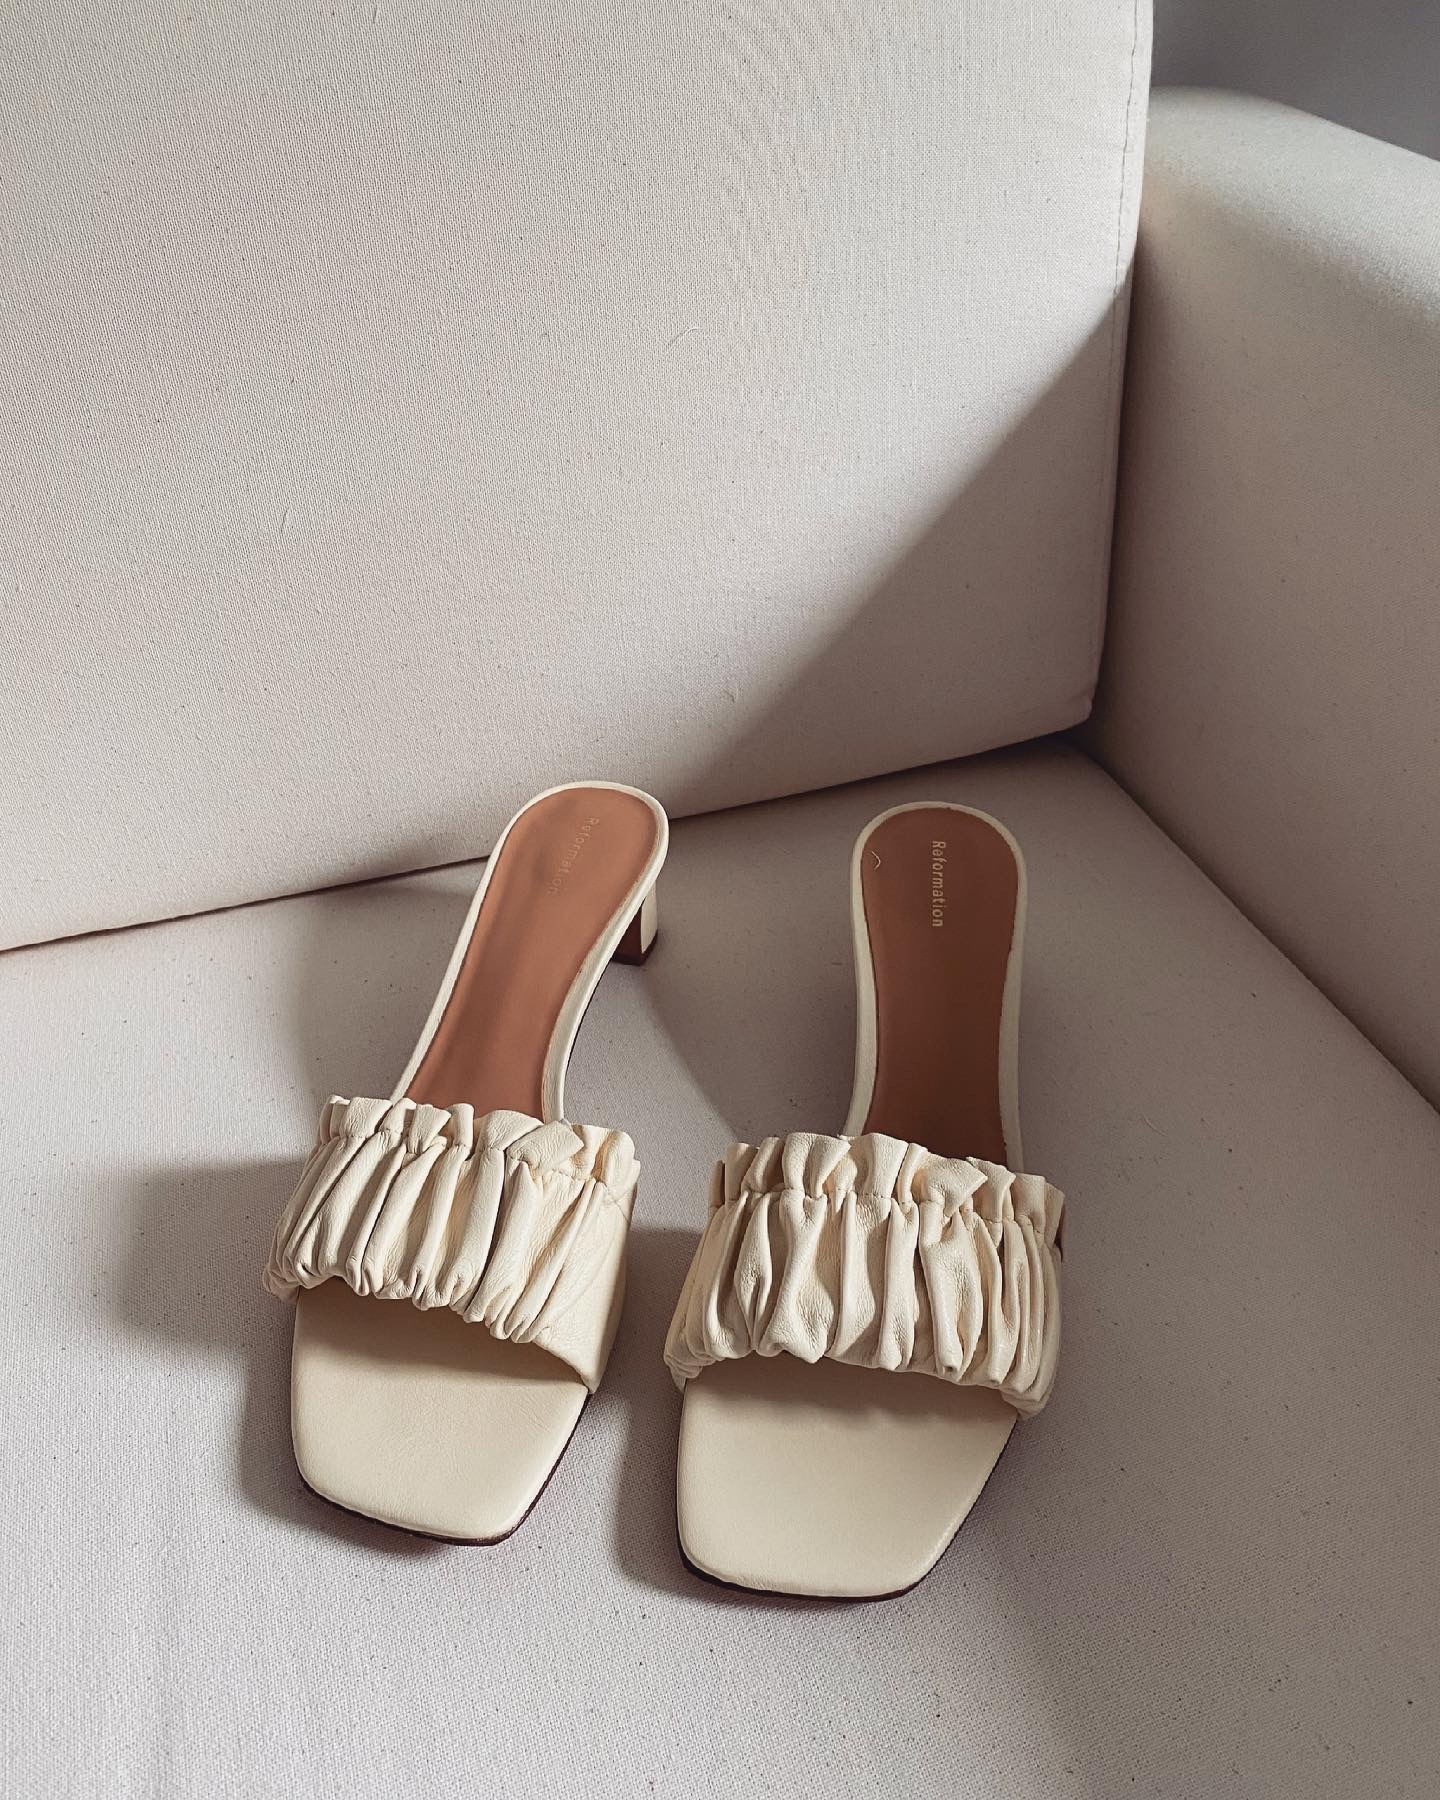 Reformation Shereen Ruched Block Heel Sandals